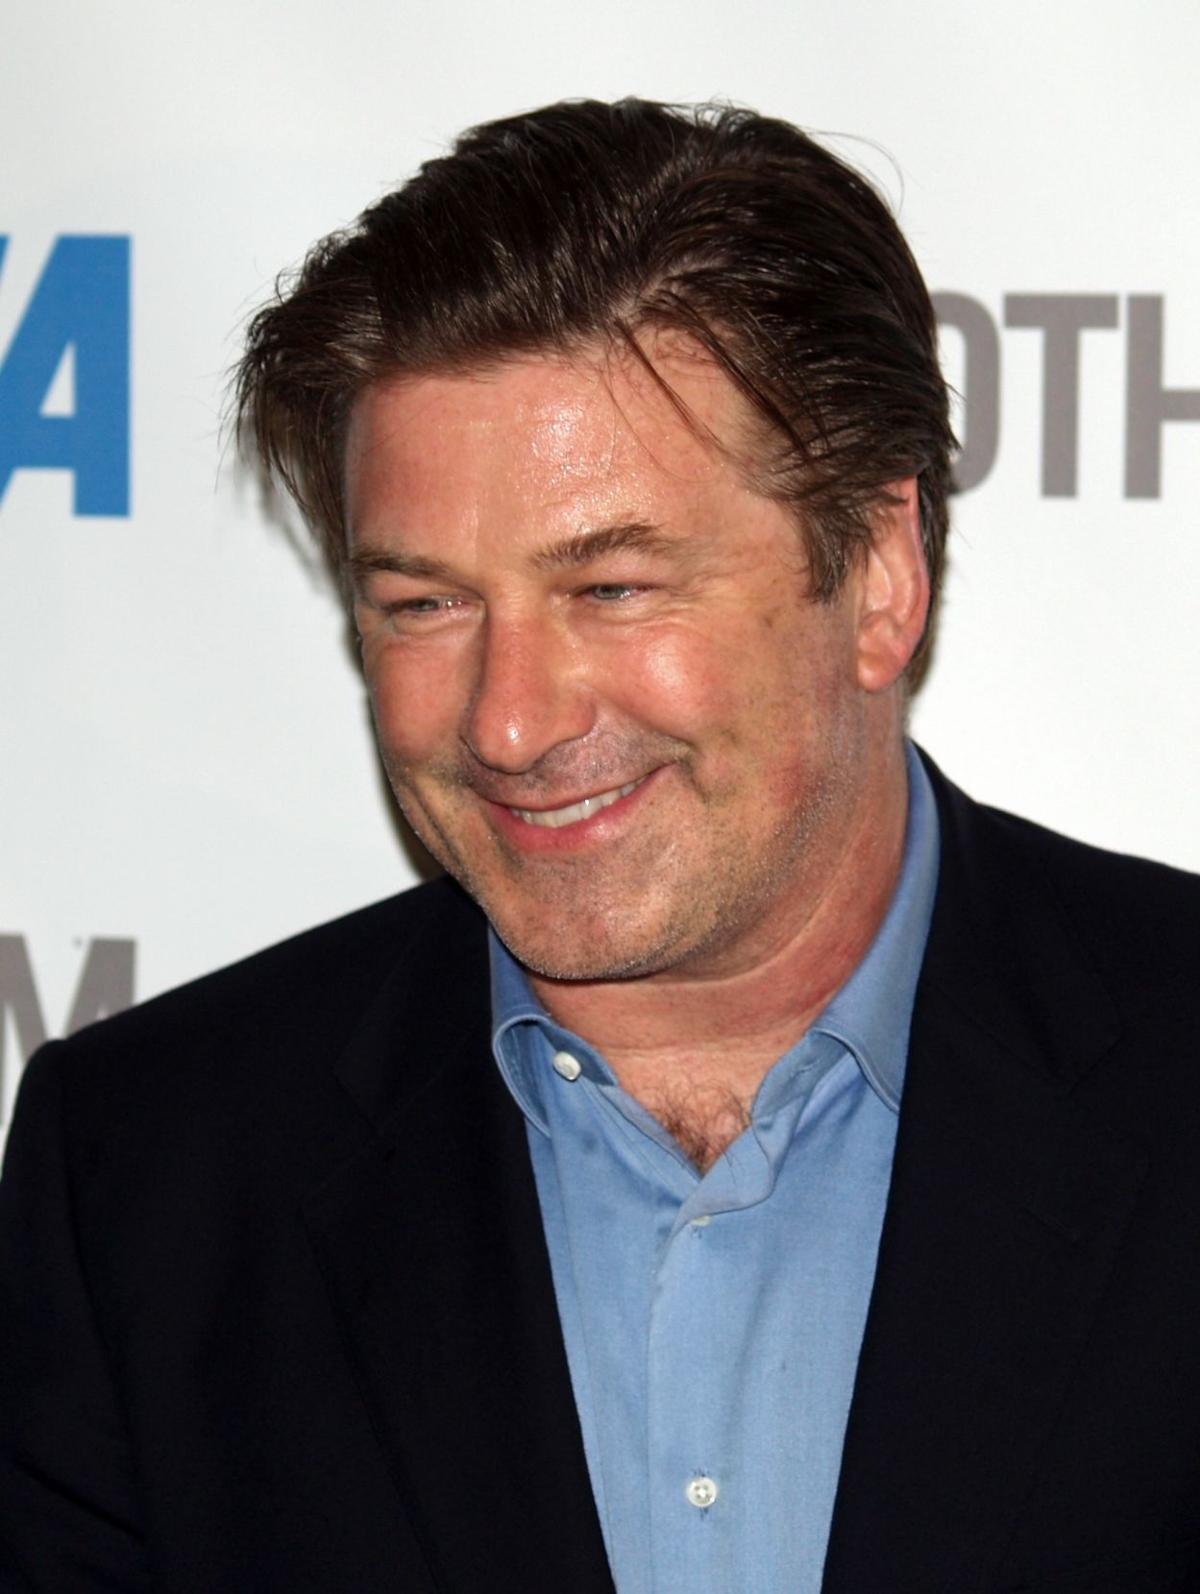 Alec Baldwin to Receive First Annual Kurt Vonnegut Humor award